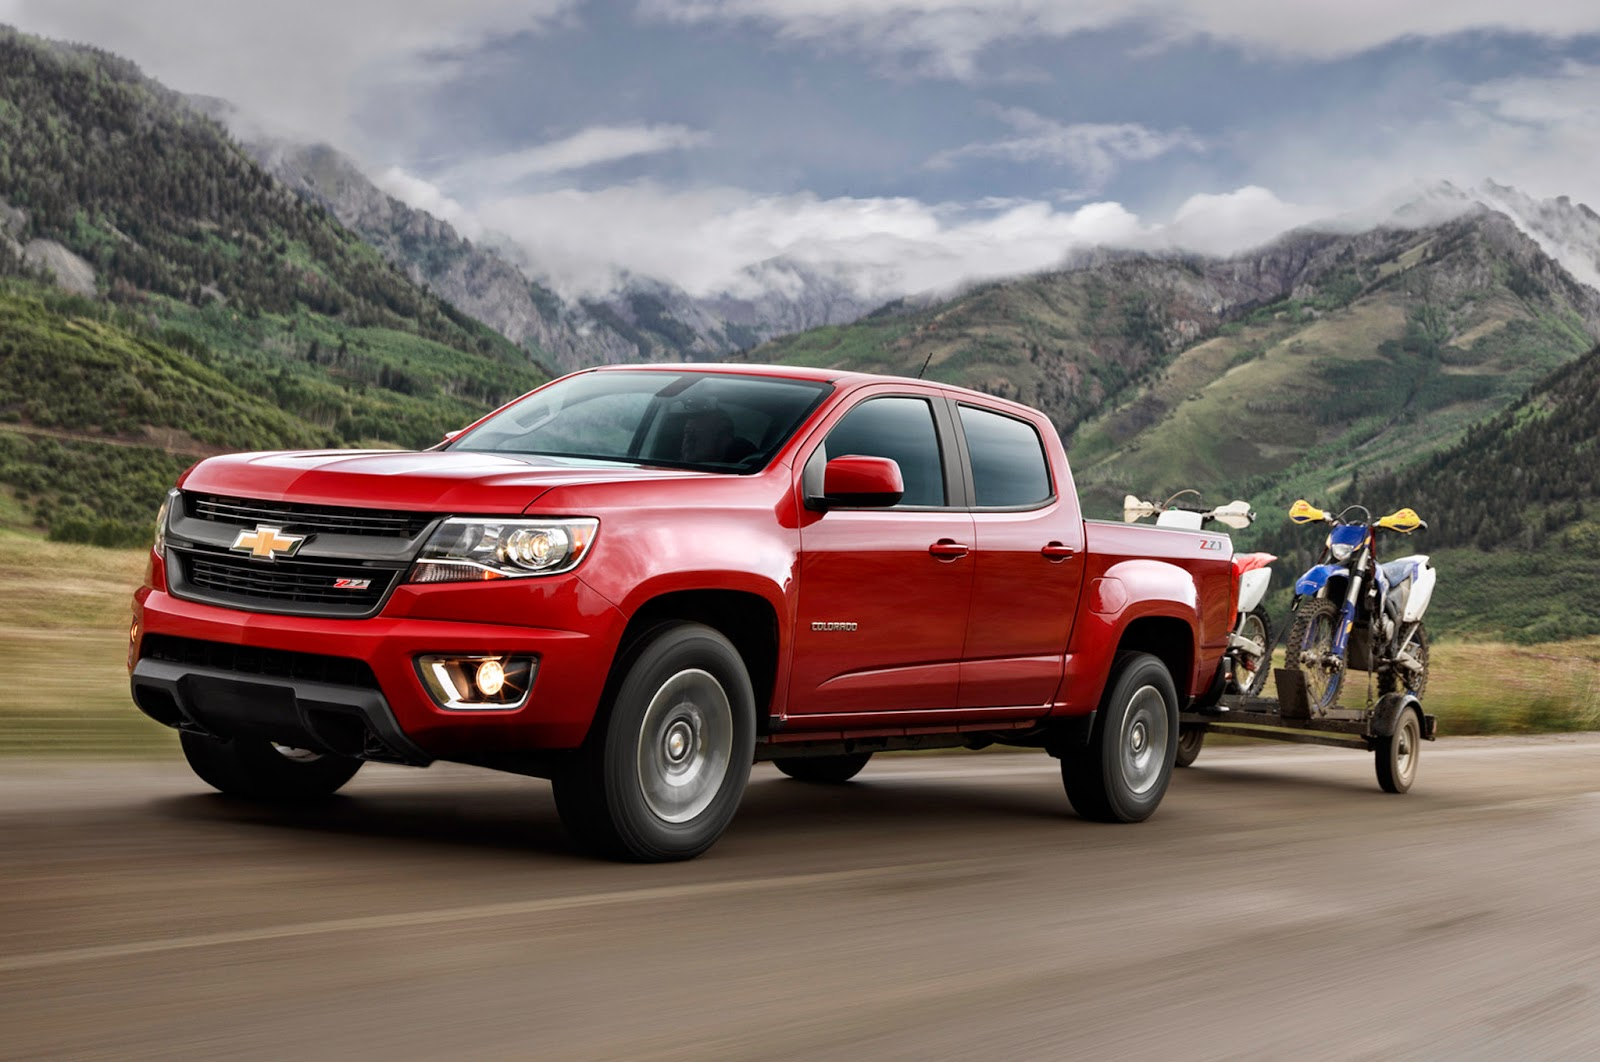 2015 Chevy Colorado Offers Segment-Leading Fuel Economy